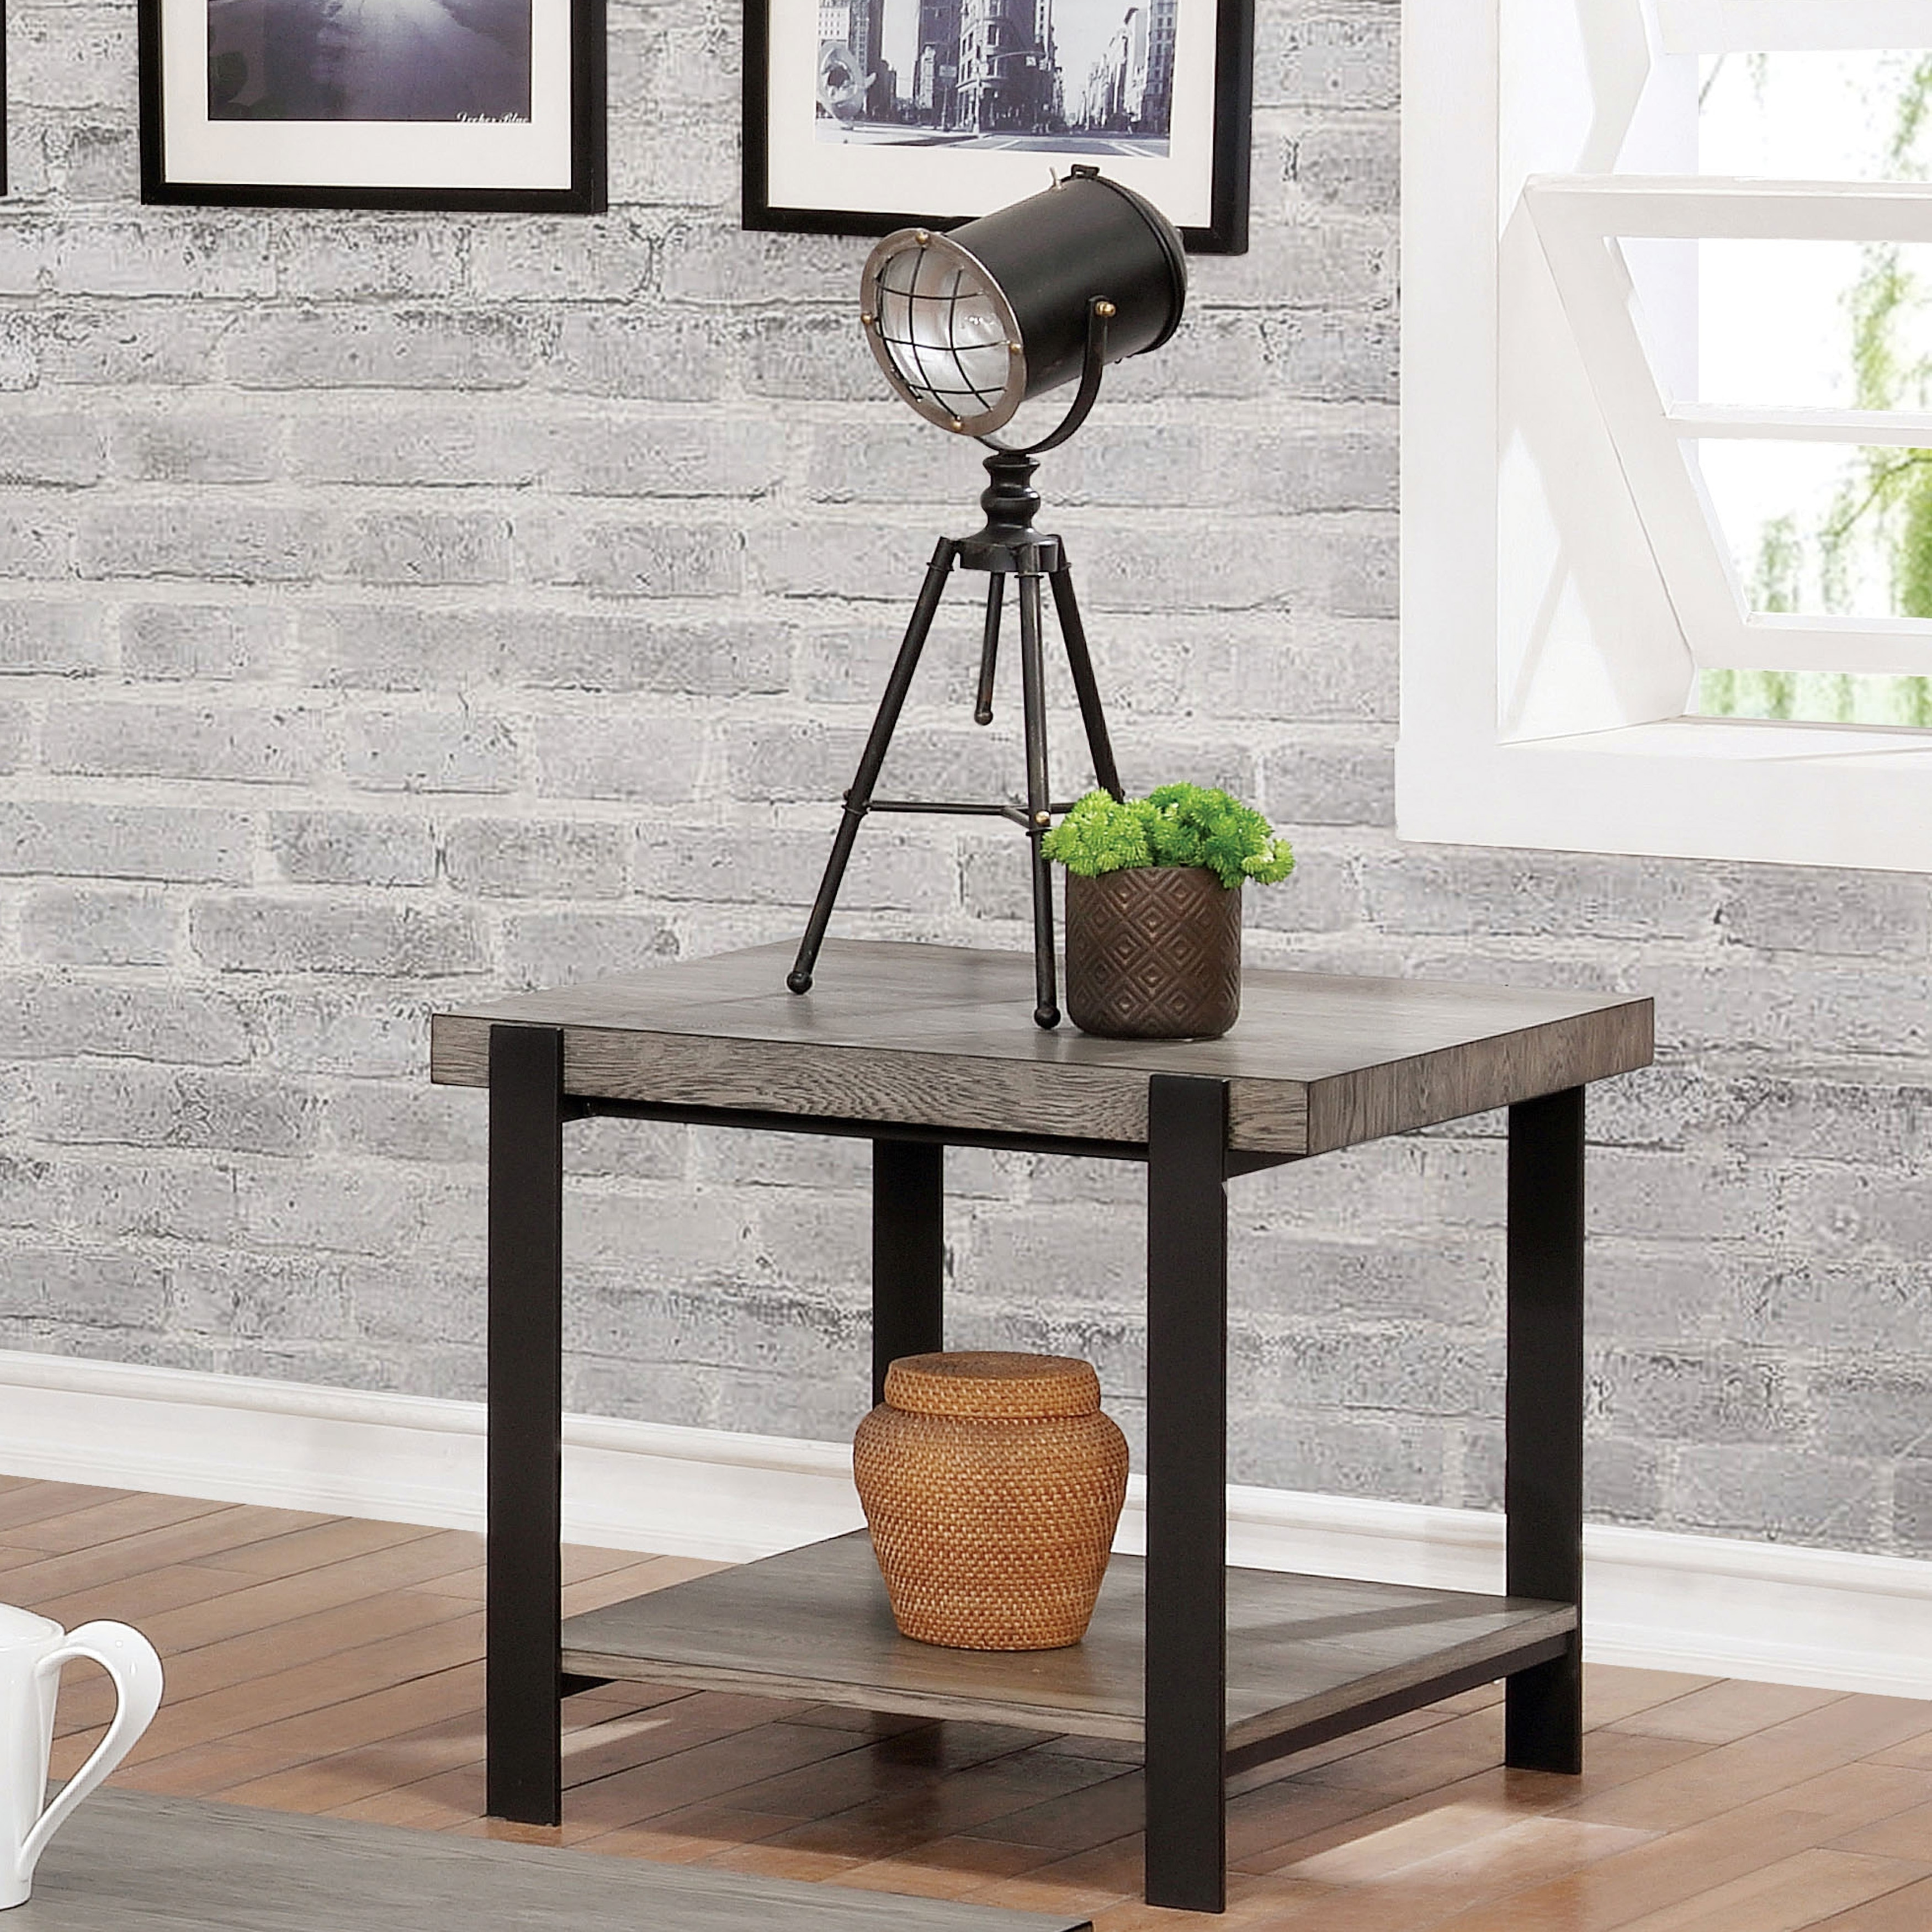 fb93b4fcc1a Shop Furniture of America Blake Contemporary Grey Wash End Table ...